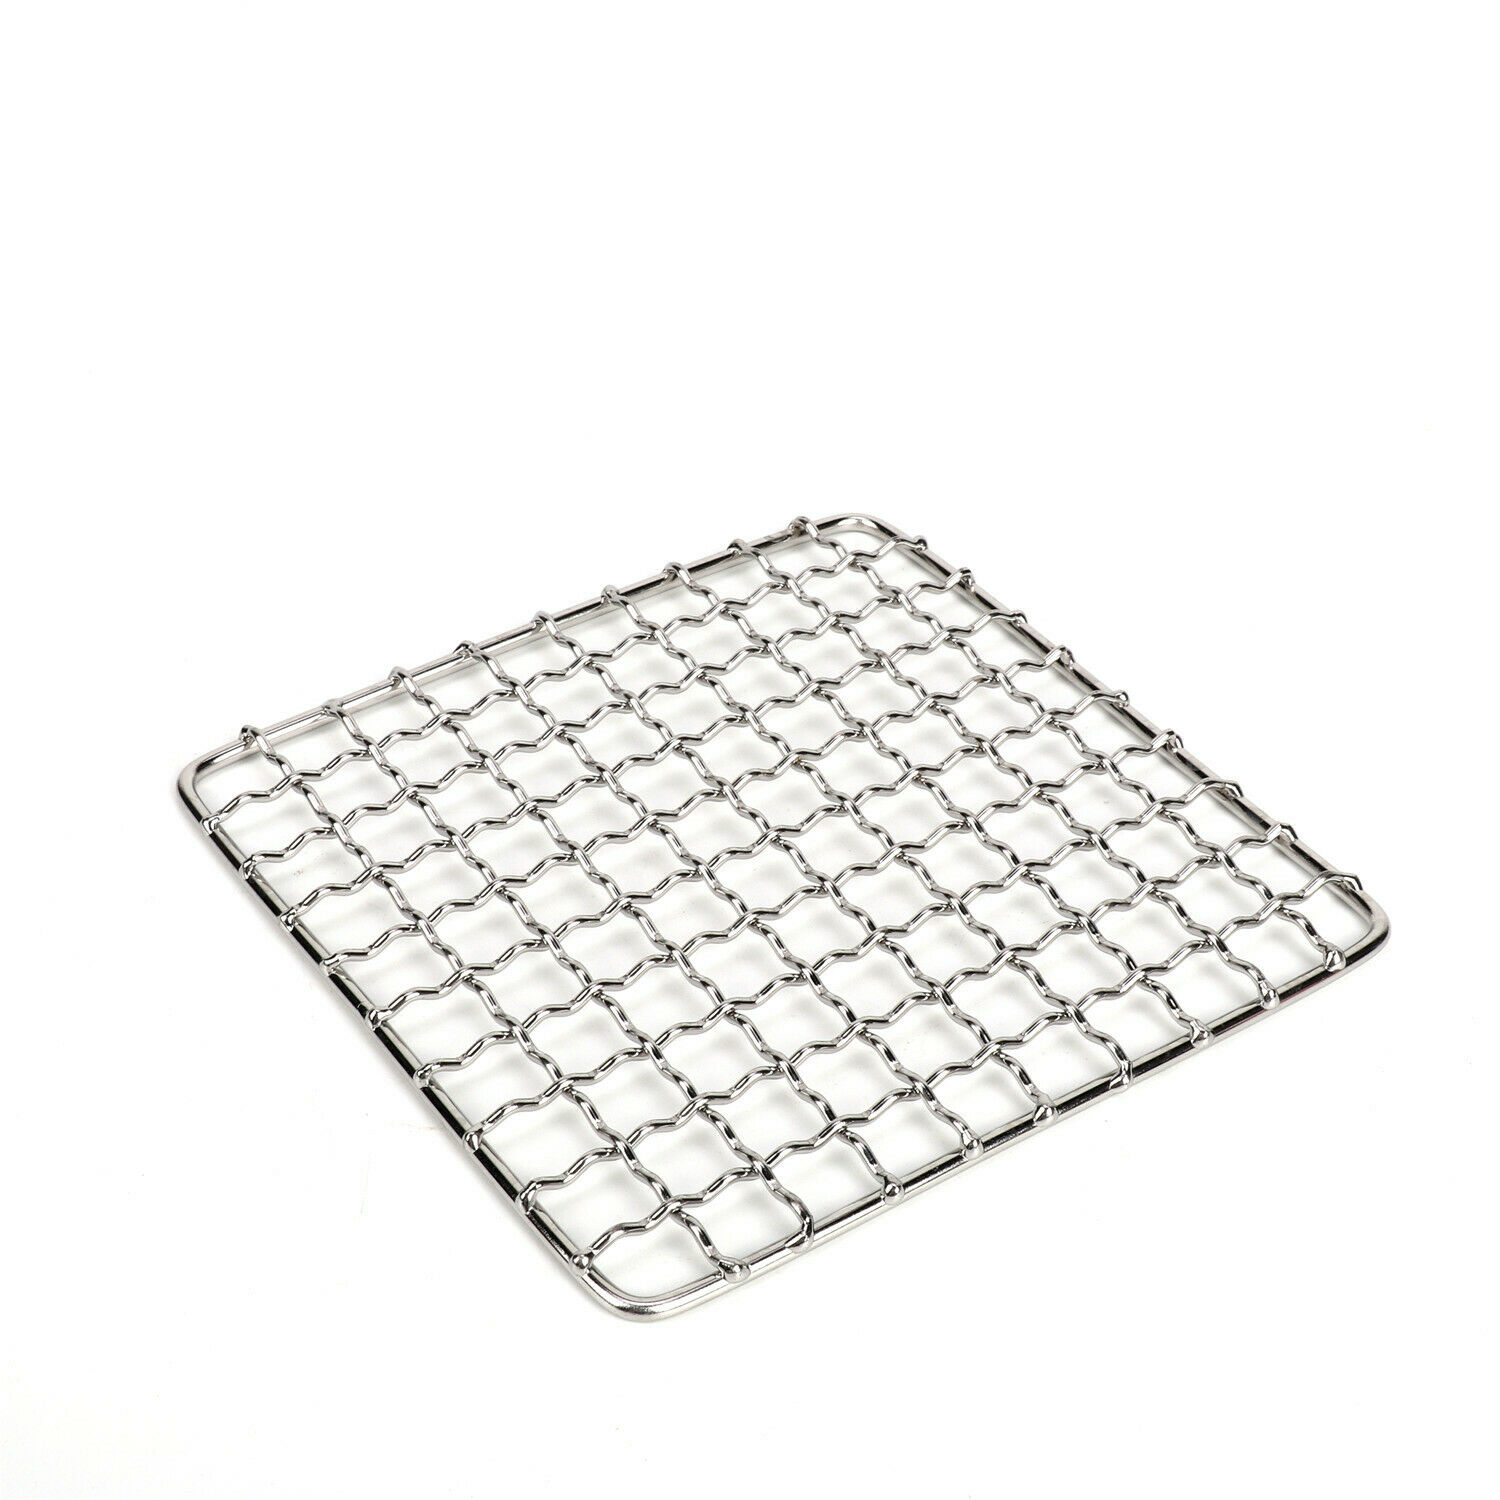 Barbecue Wire Mesh Stainless Steel Grid Square BBQ Rack Outdoor BBQ Net Grill